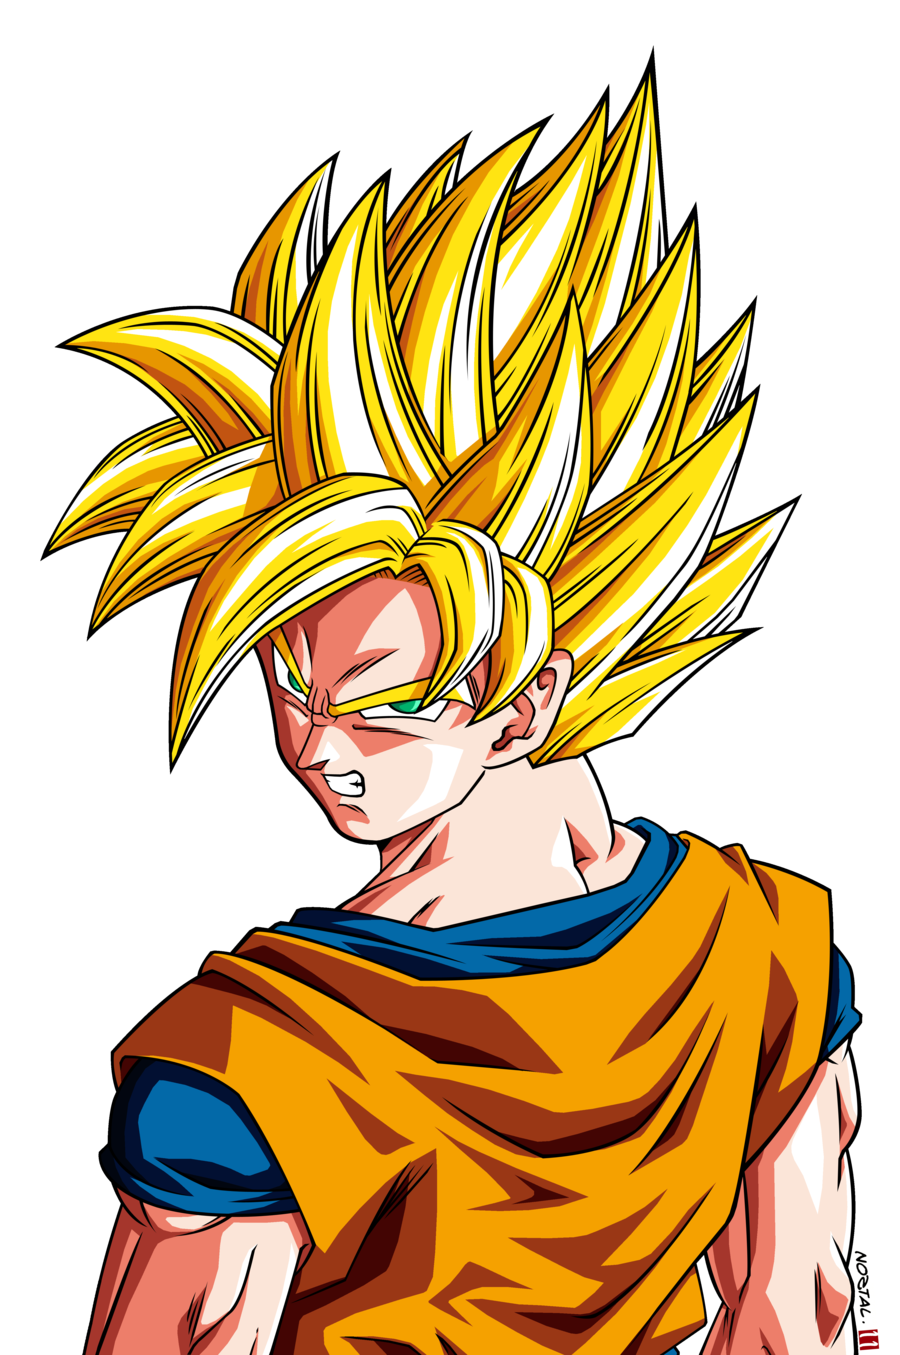 Goku y vegeta super imagen z - Dragon ball z goku son ...